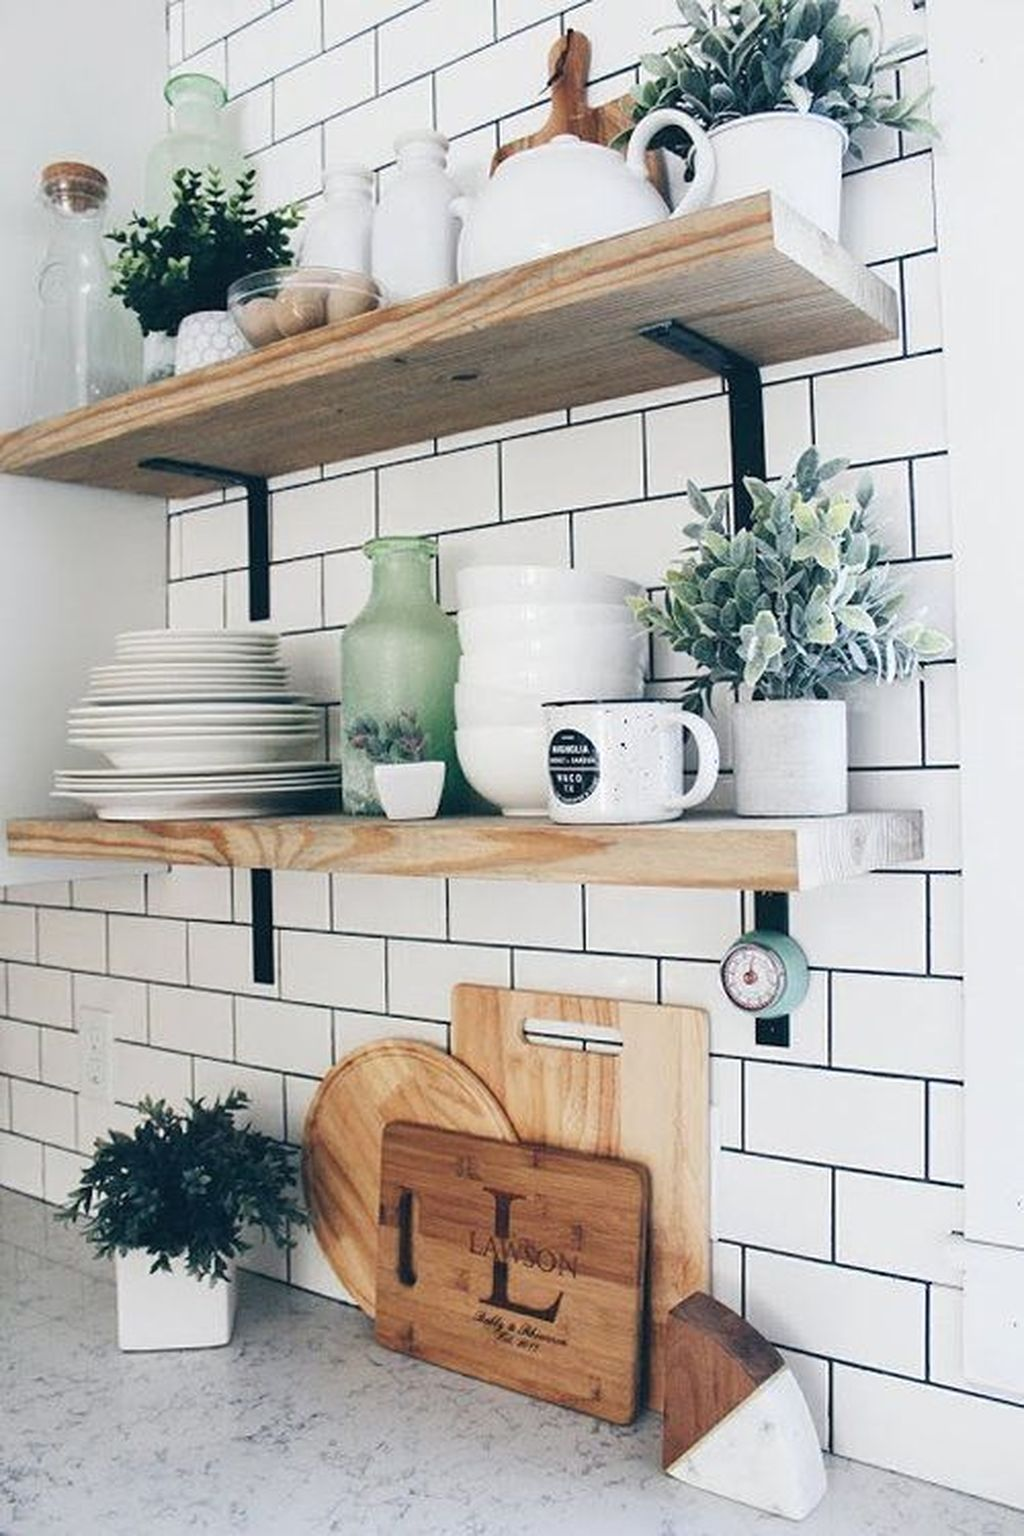 Gorgeous Kitchen Shelves Ideas You Must Have 15